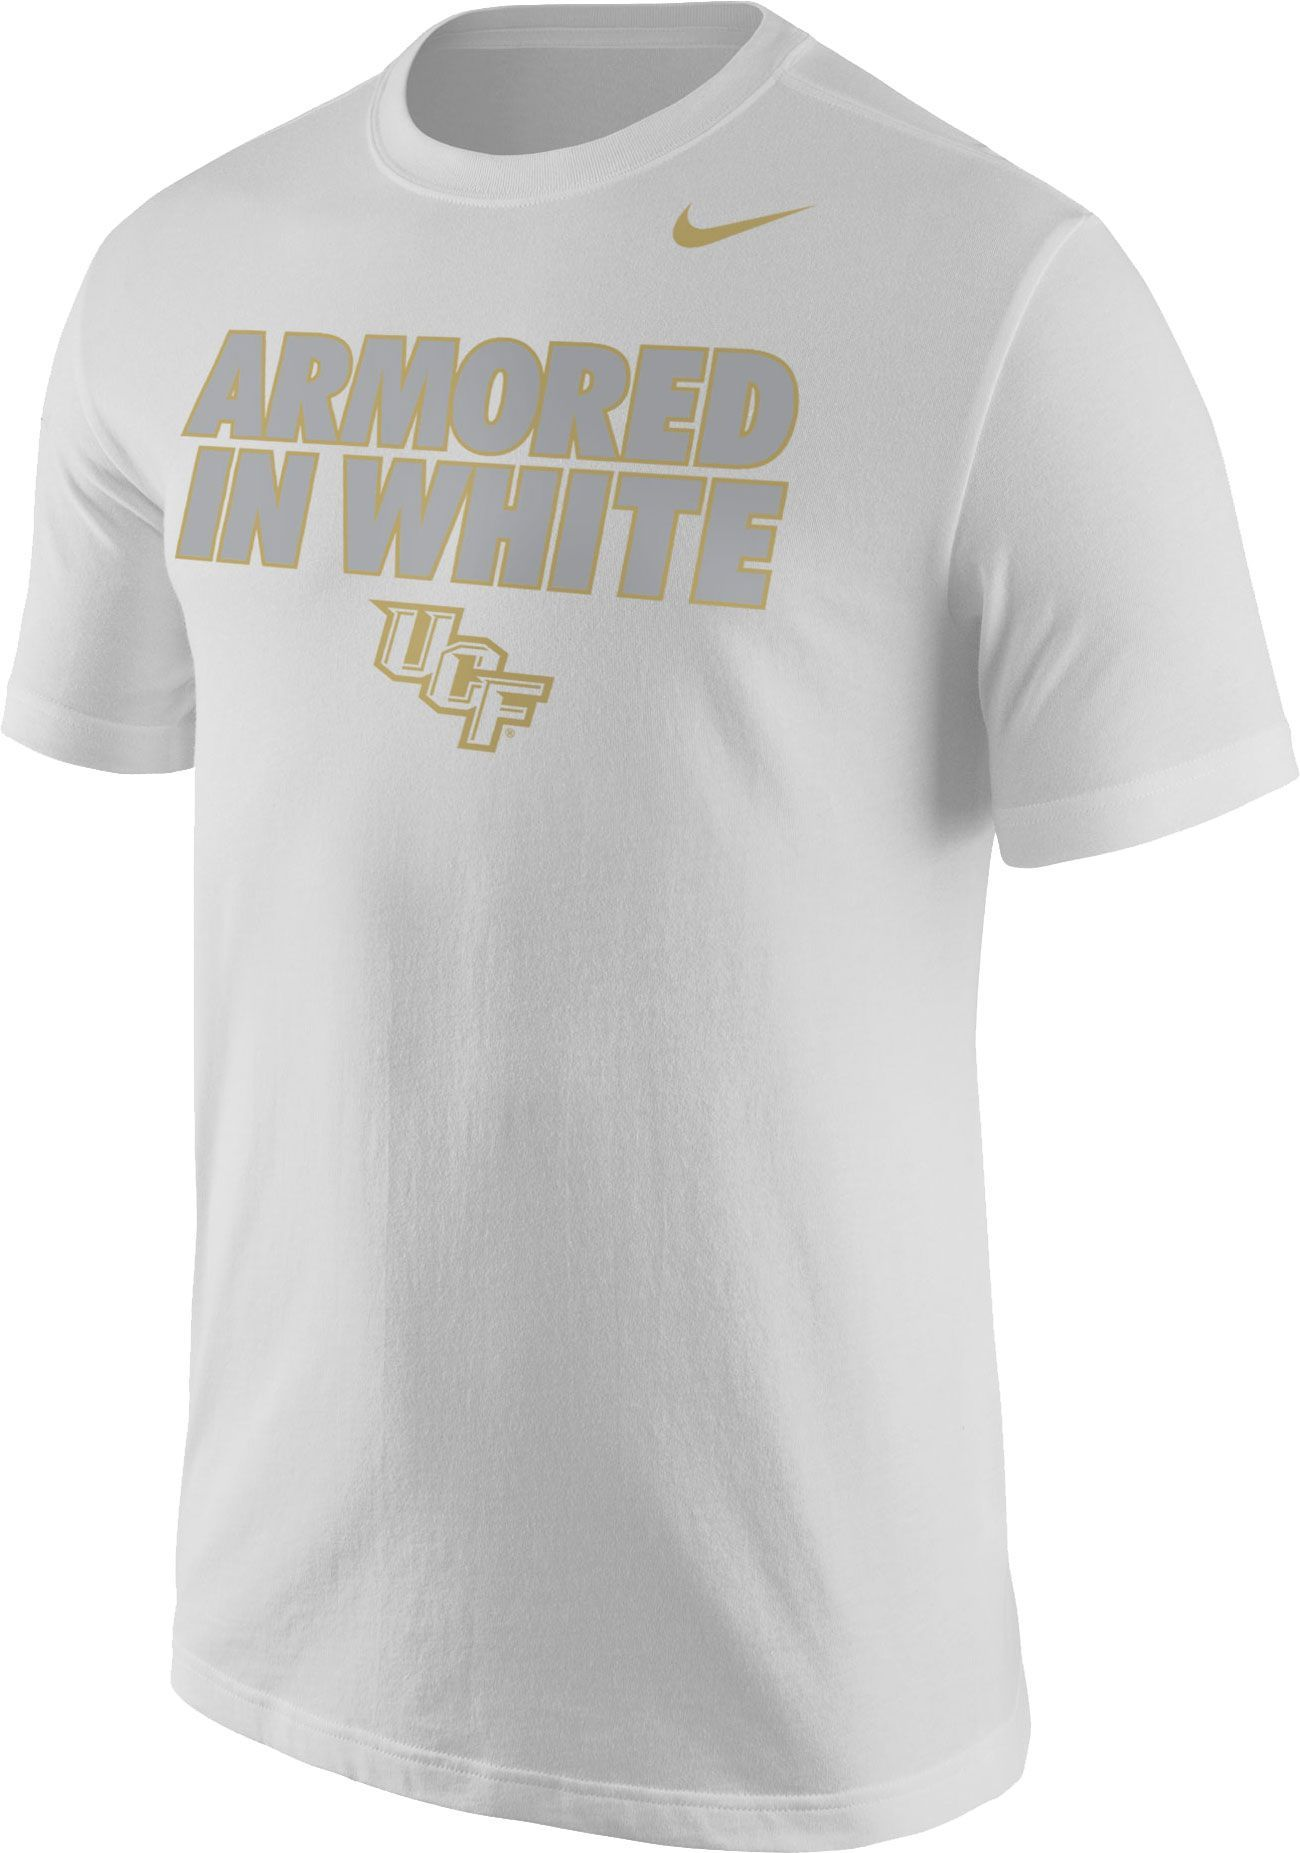 finest selection e6958 43634 Nike Men's UCF Knights 'Armored in White' White Out Football ...